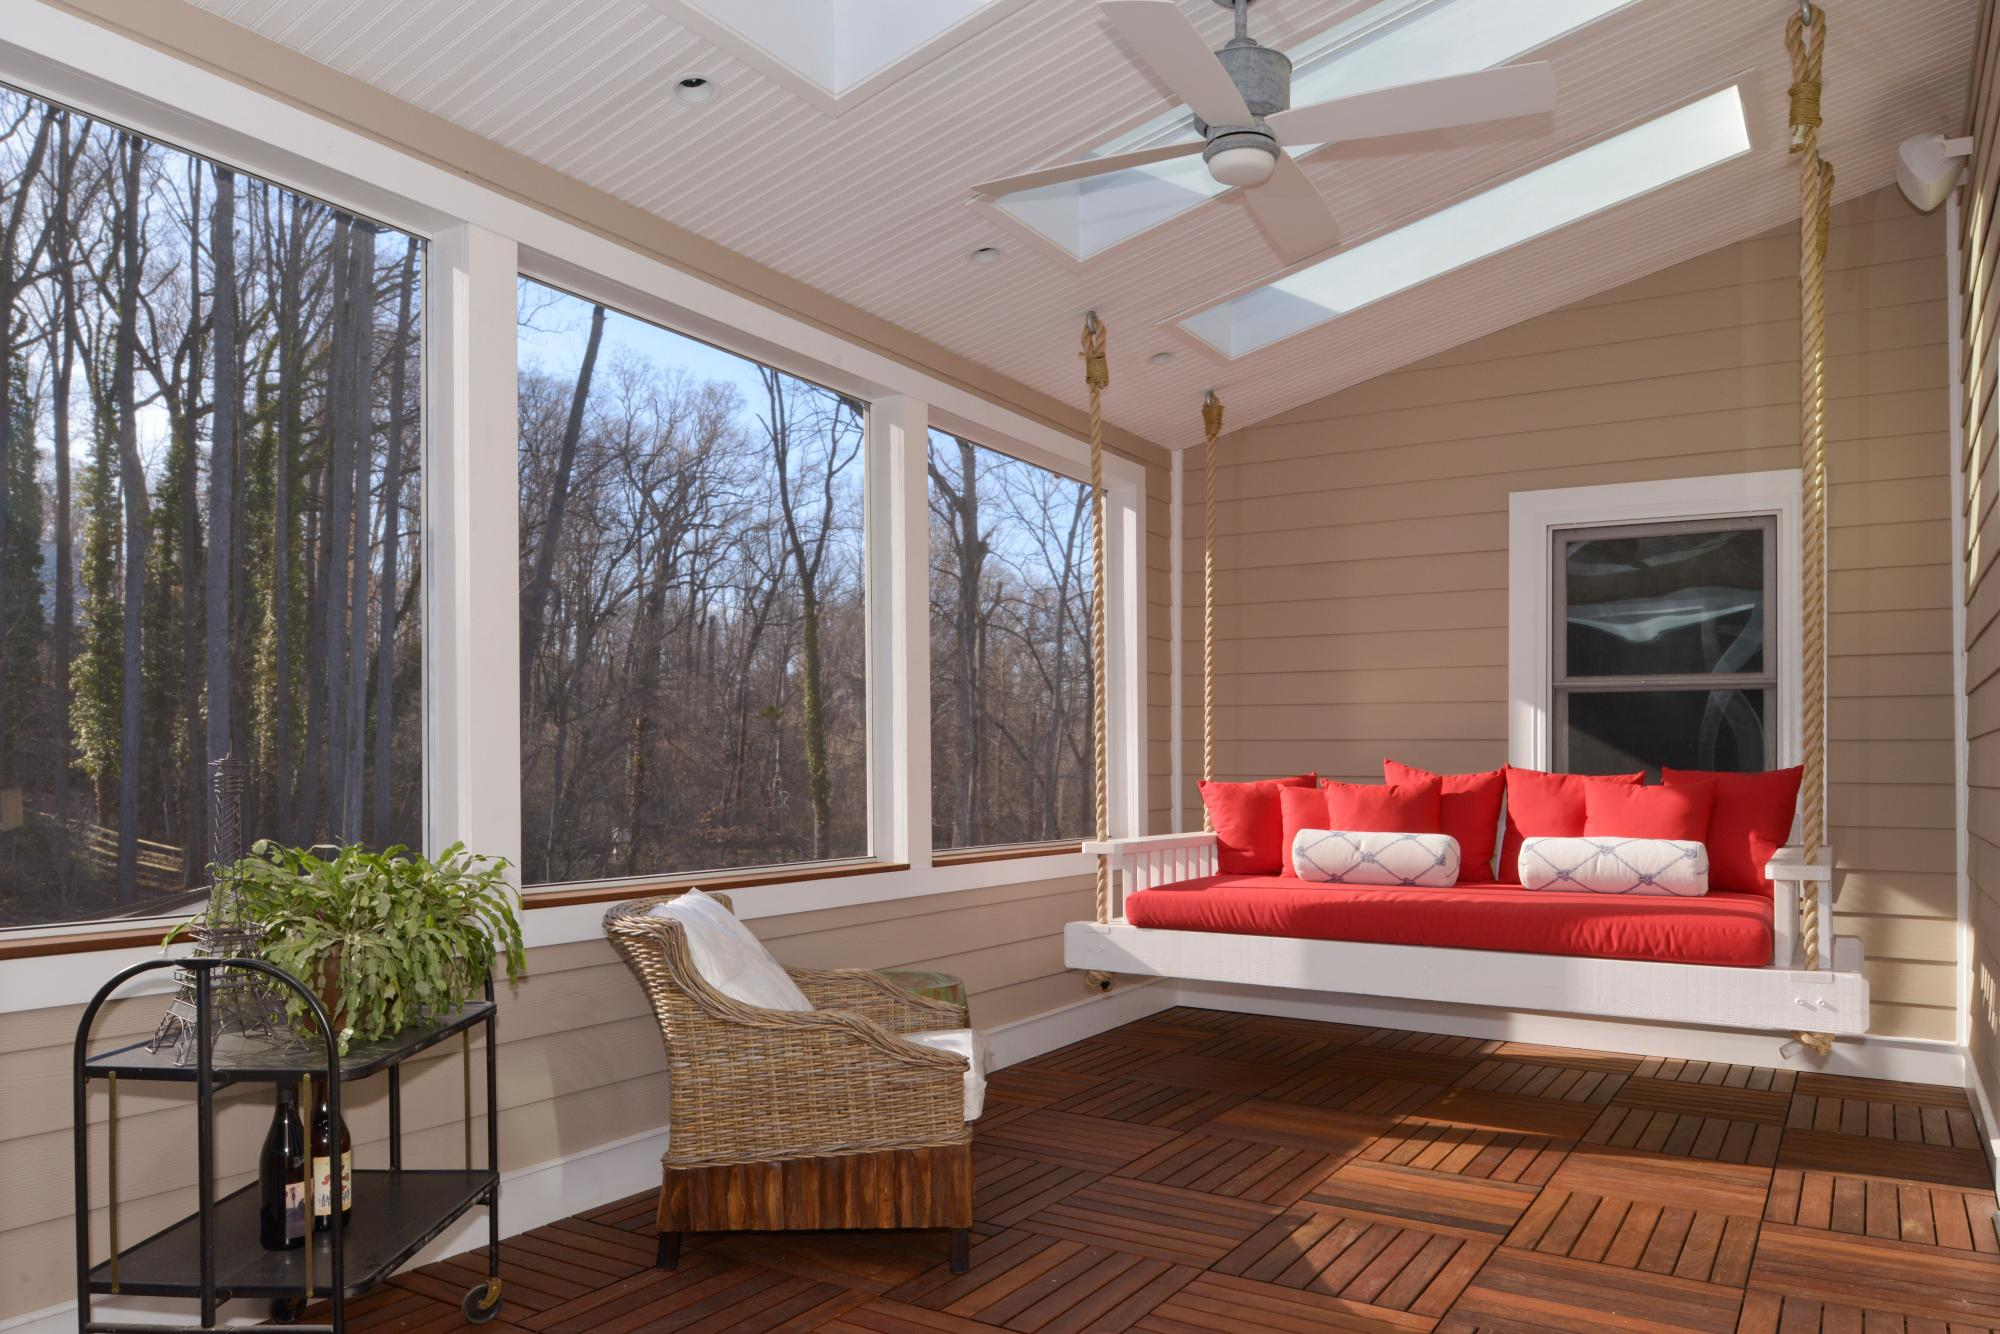 Commonwealth_Restorations_Evans_screened_porch.jpeg